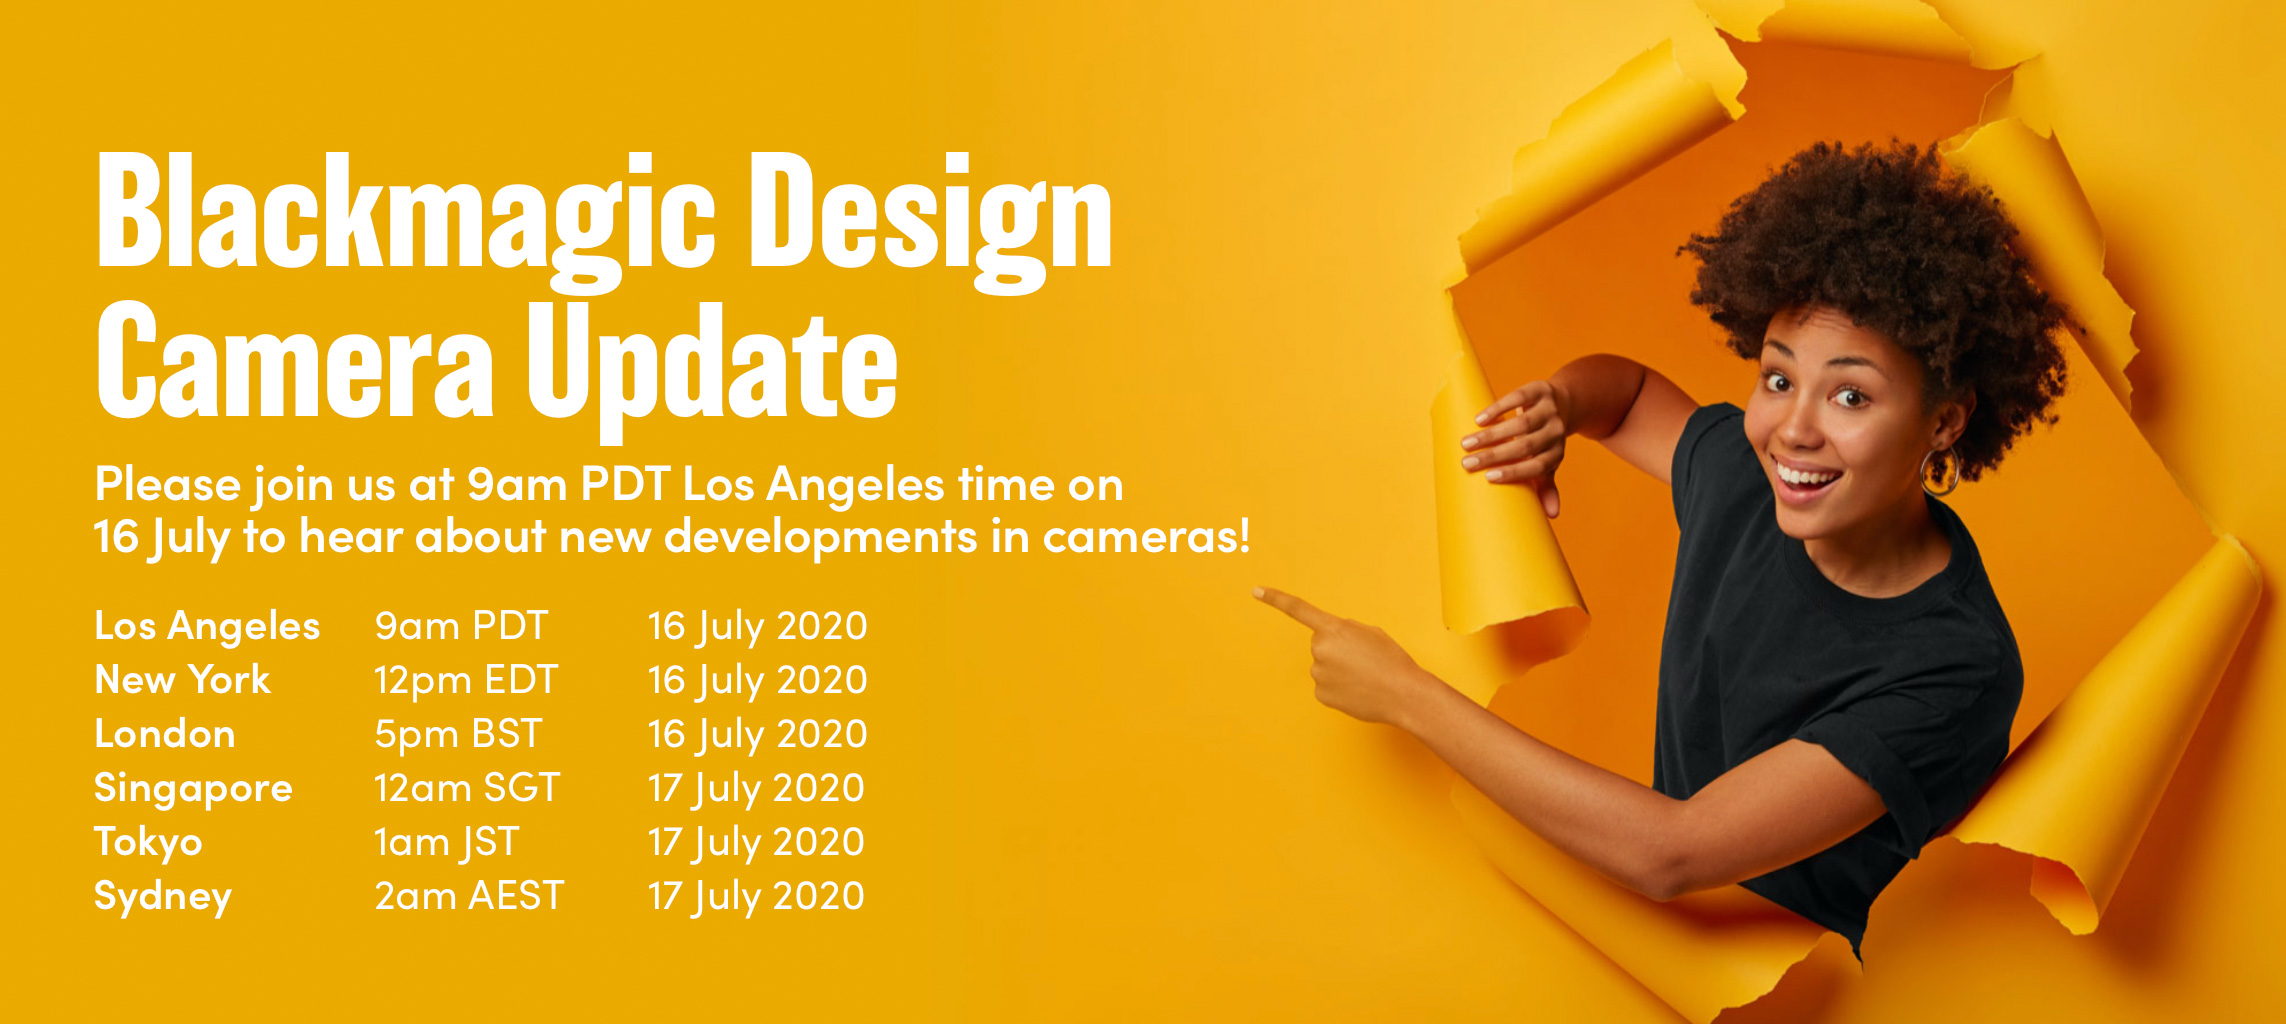 Blackmagic Design: Tomorrow Livestream on New Camera Updates and Resolve 16.2.4 released